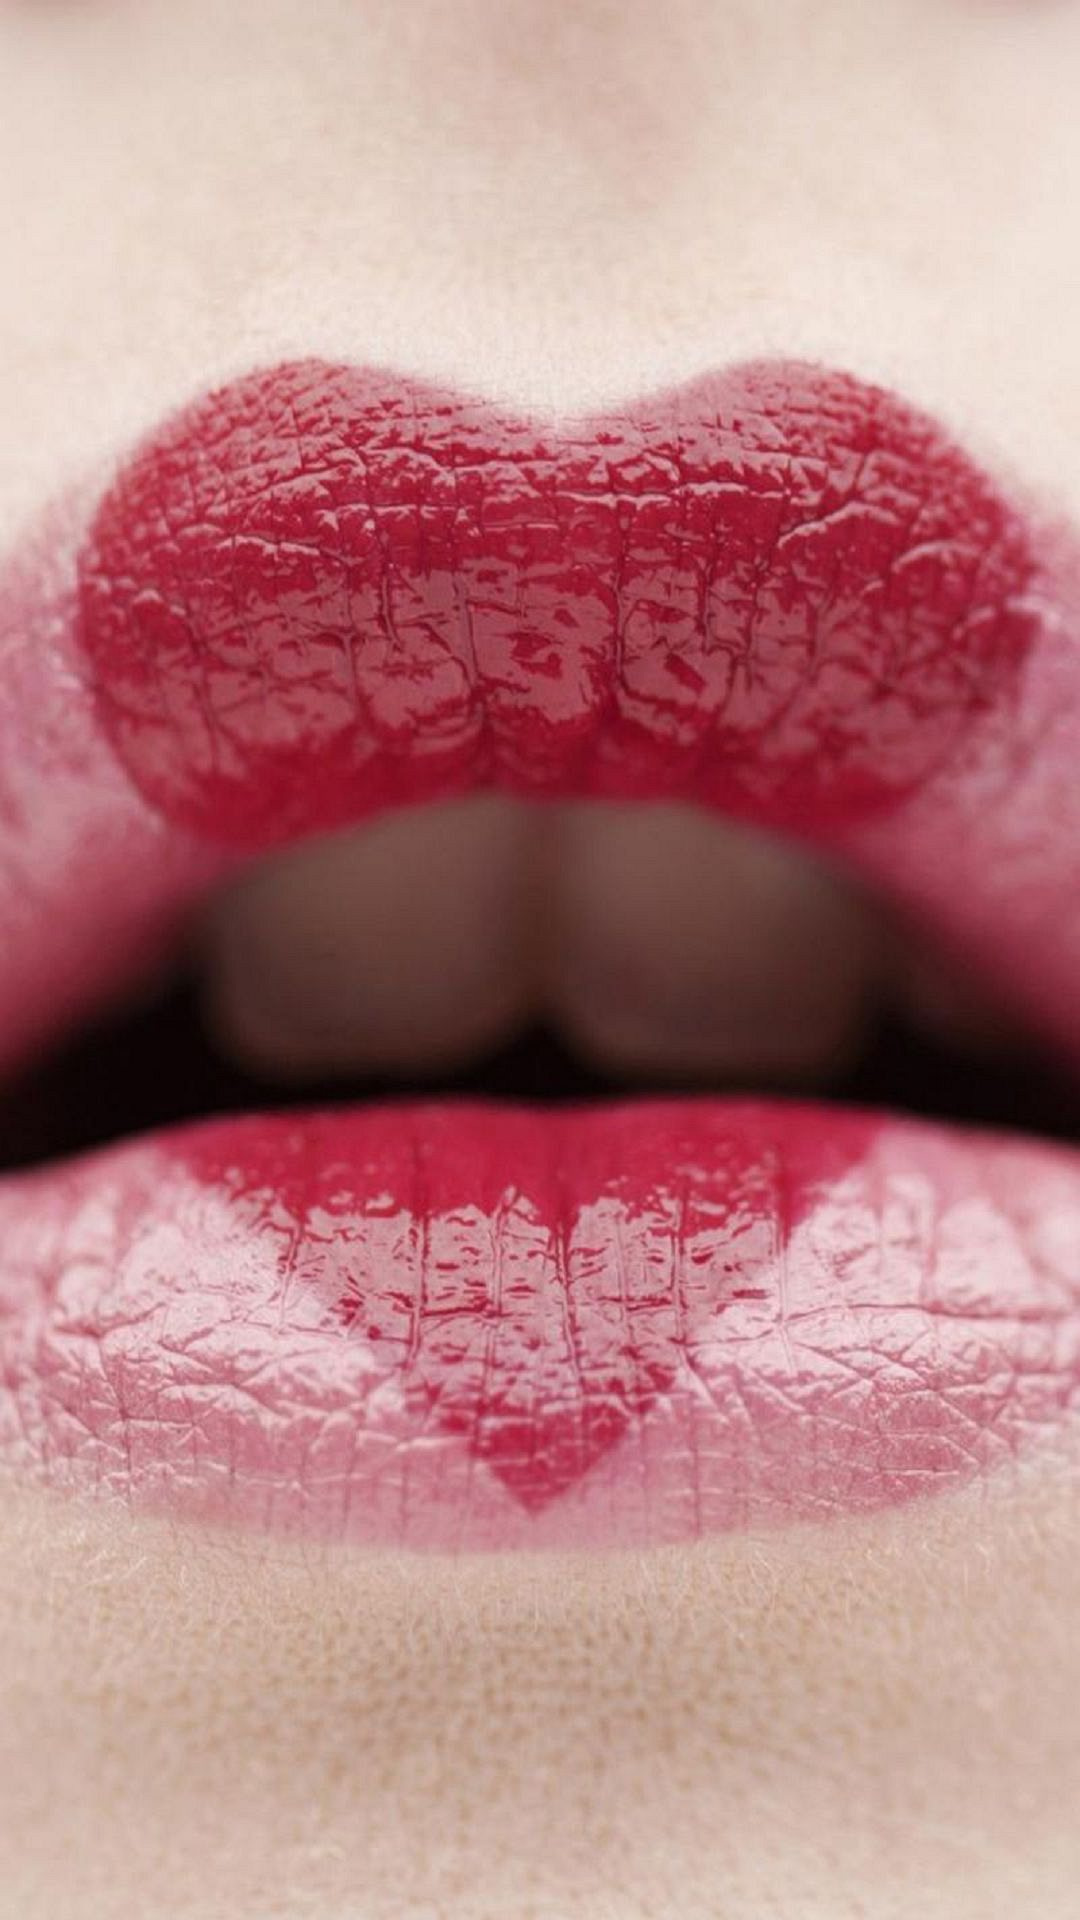 Hot Lips Love Wallpaper